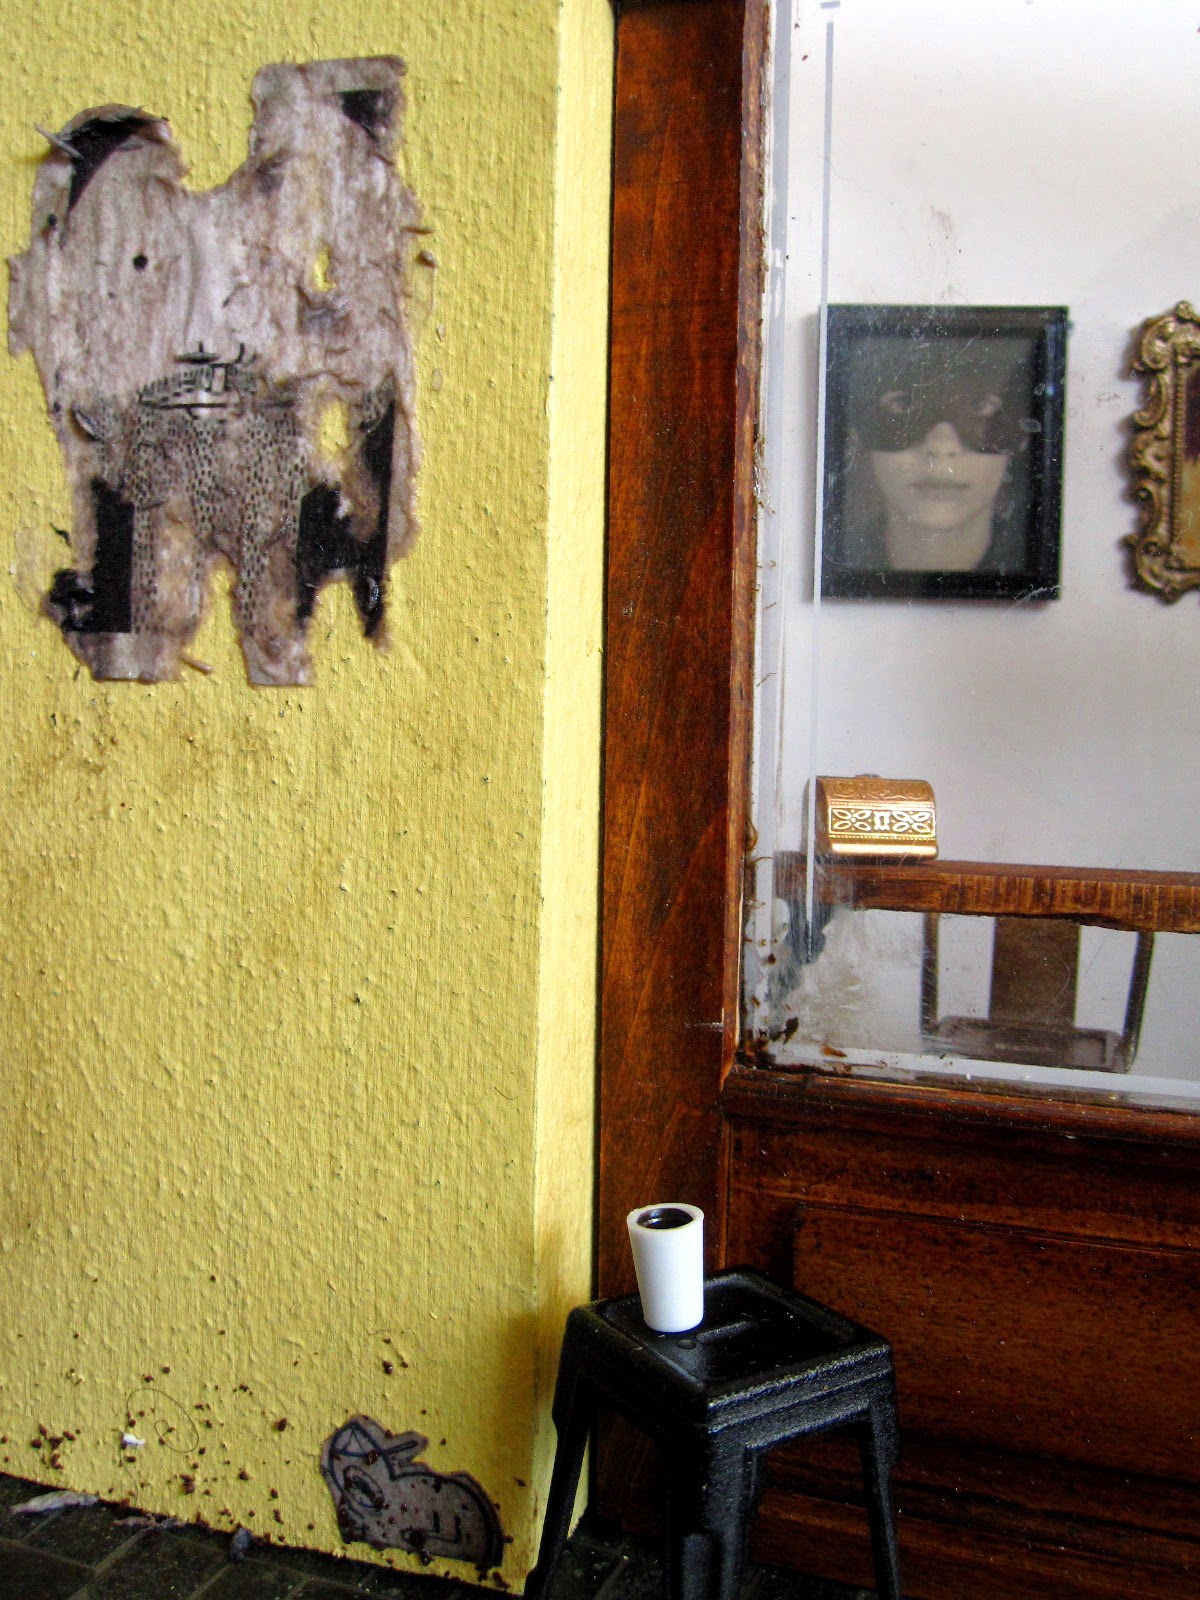 Exterior of a modern dolls' house miniature cafe with paste-ups on the wall.